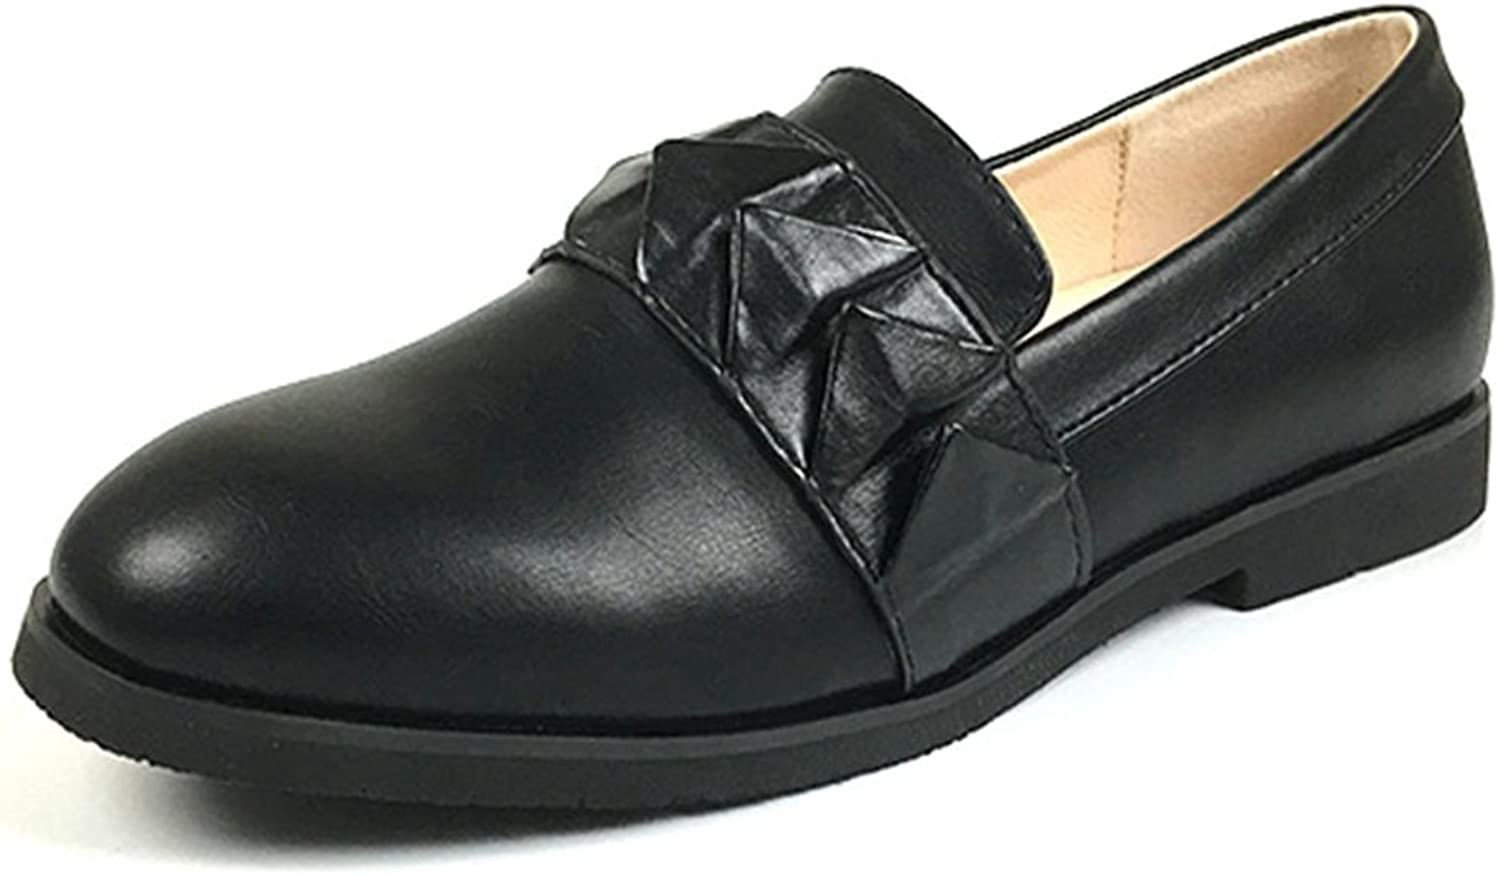 Hoxekle Womens Origami Casual Low Heels Low Top Round Toe Rubber Sole Slip On Loafer shoes